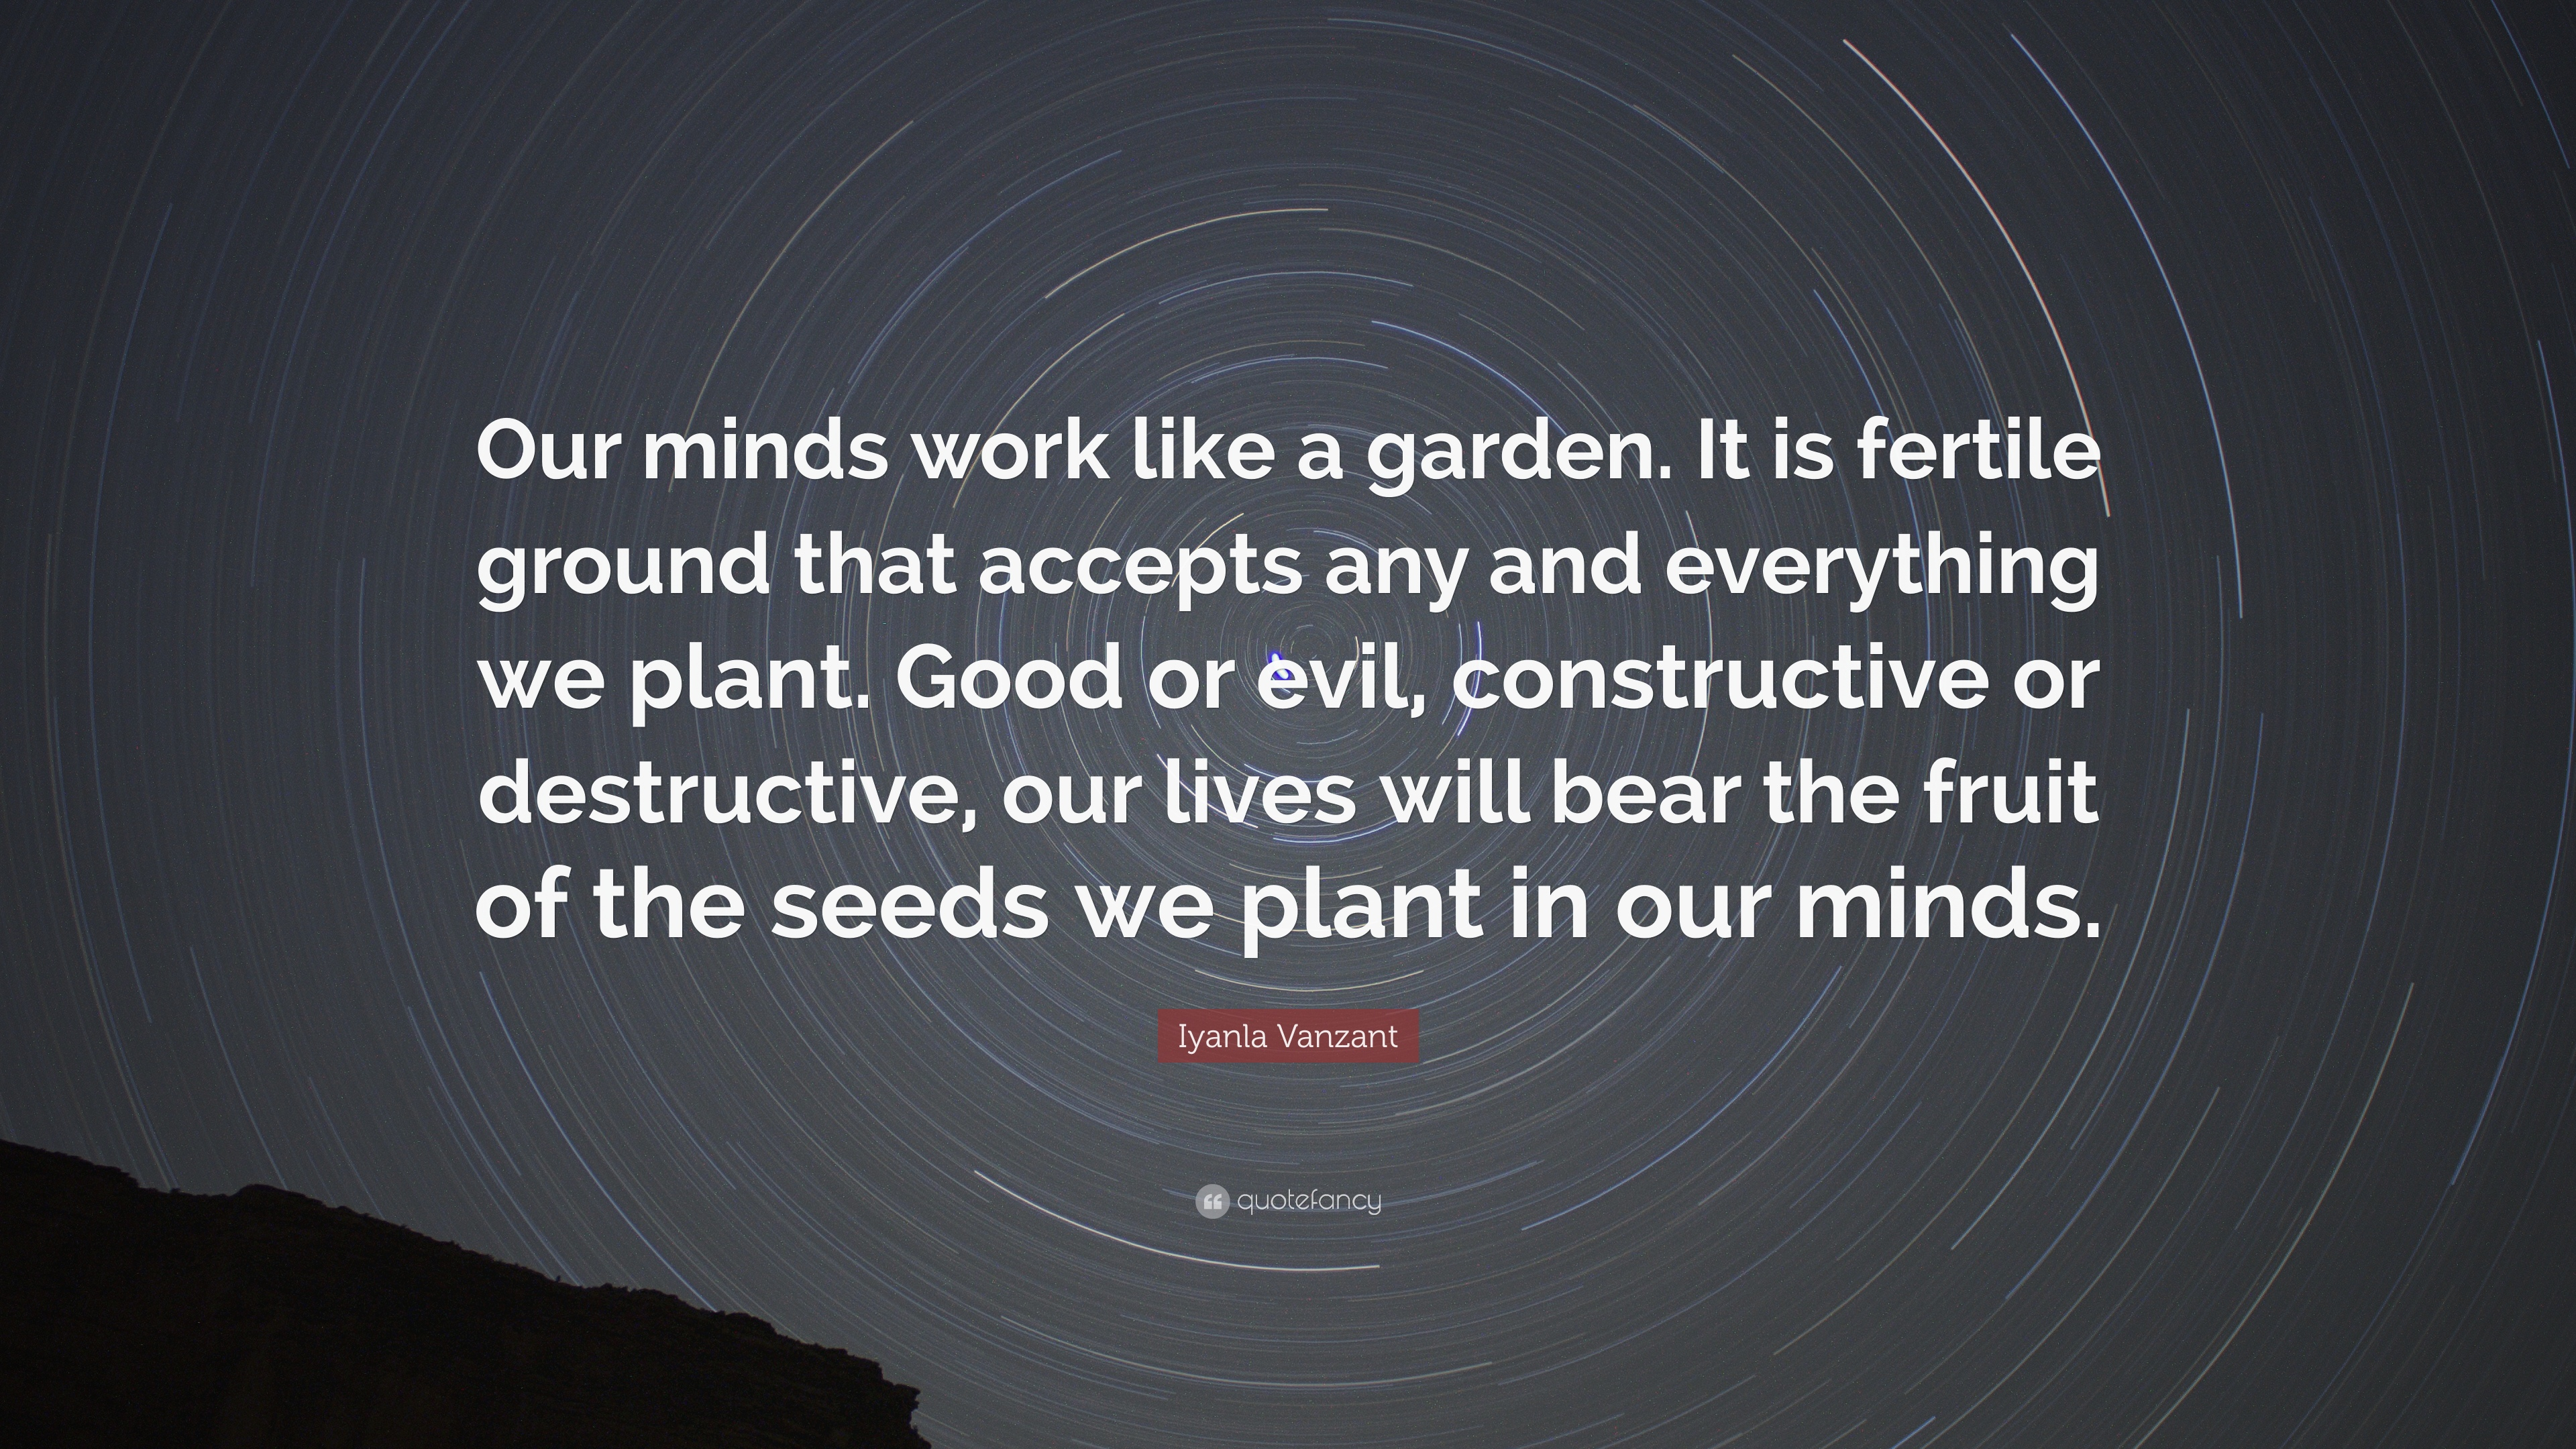 Iyanla Vanzant Quote Our minds work like a garden It is fertile